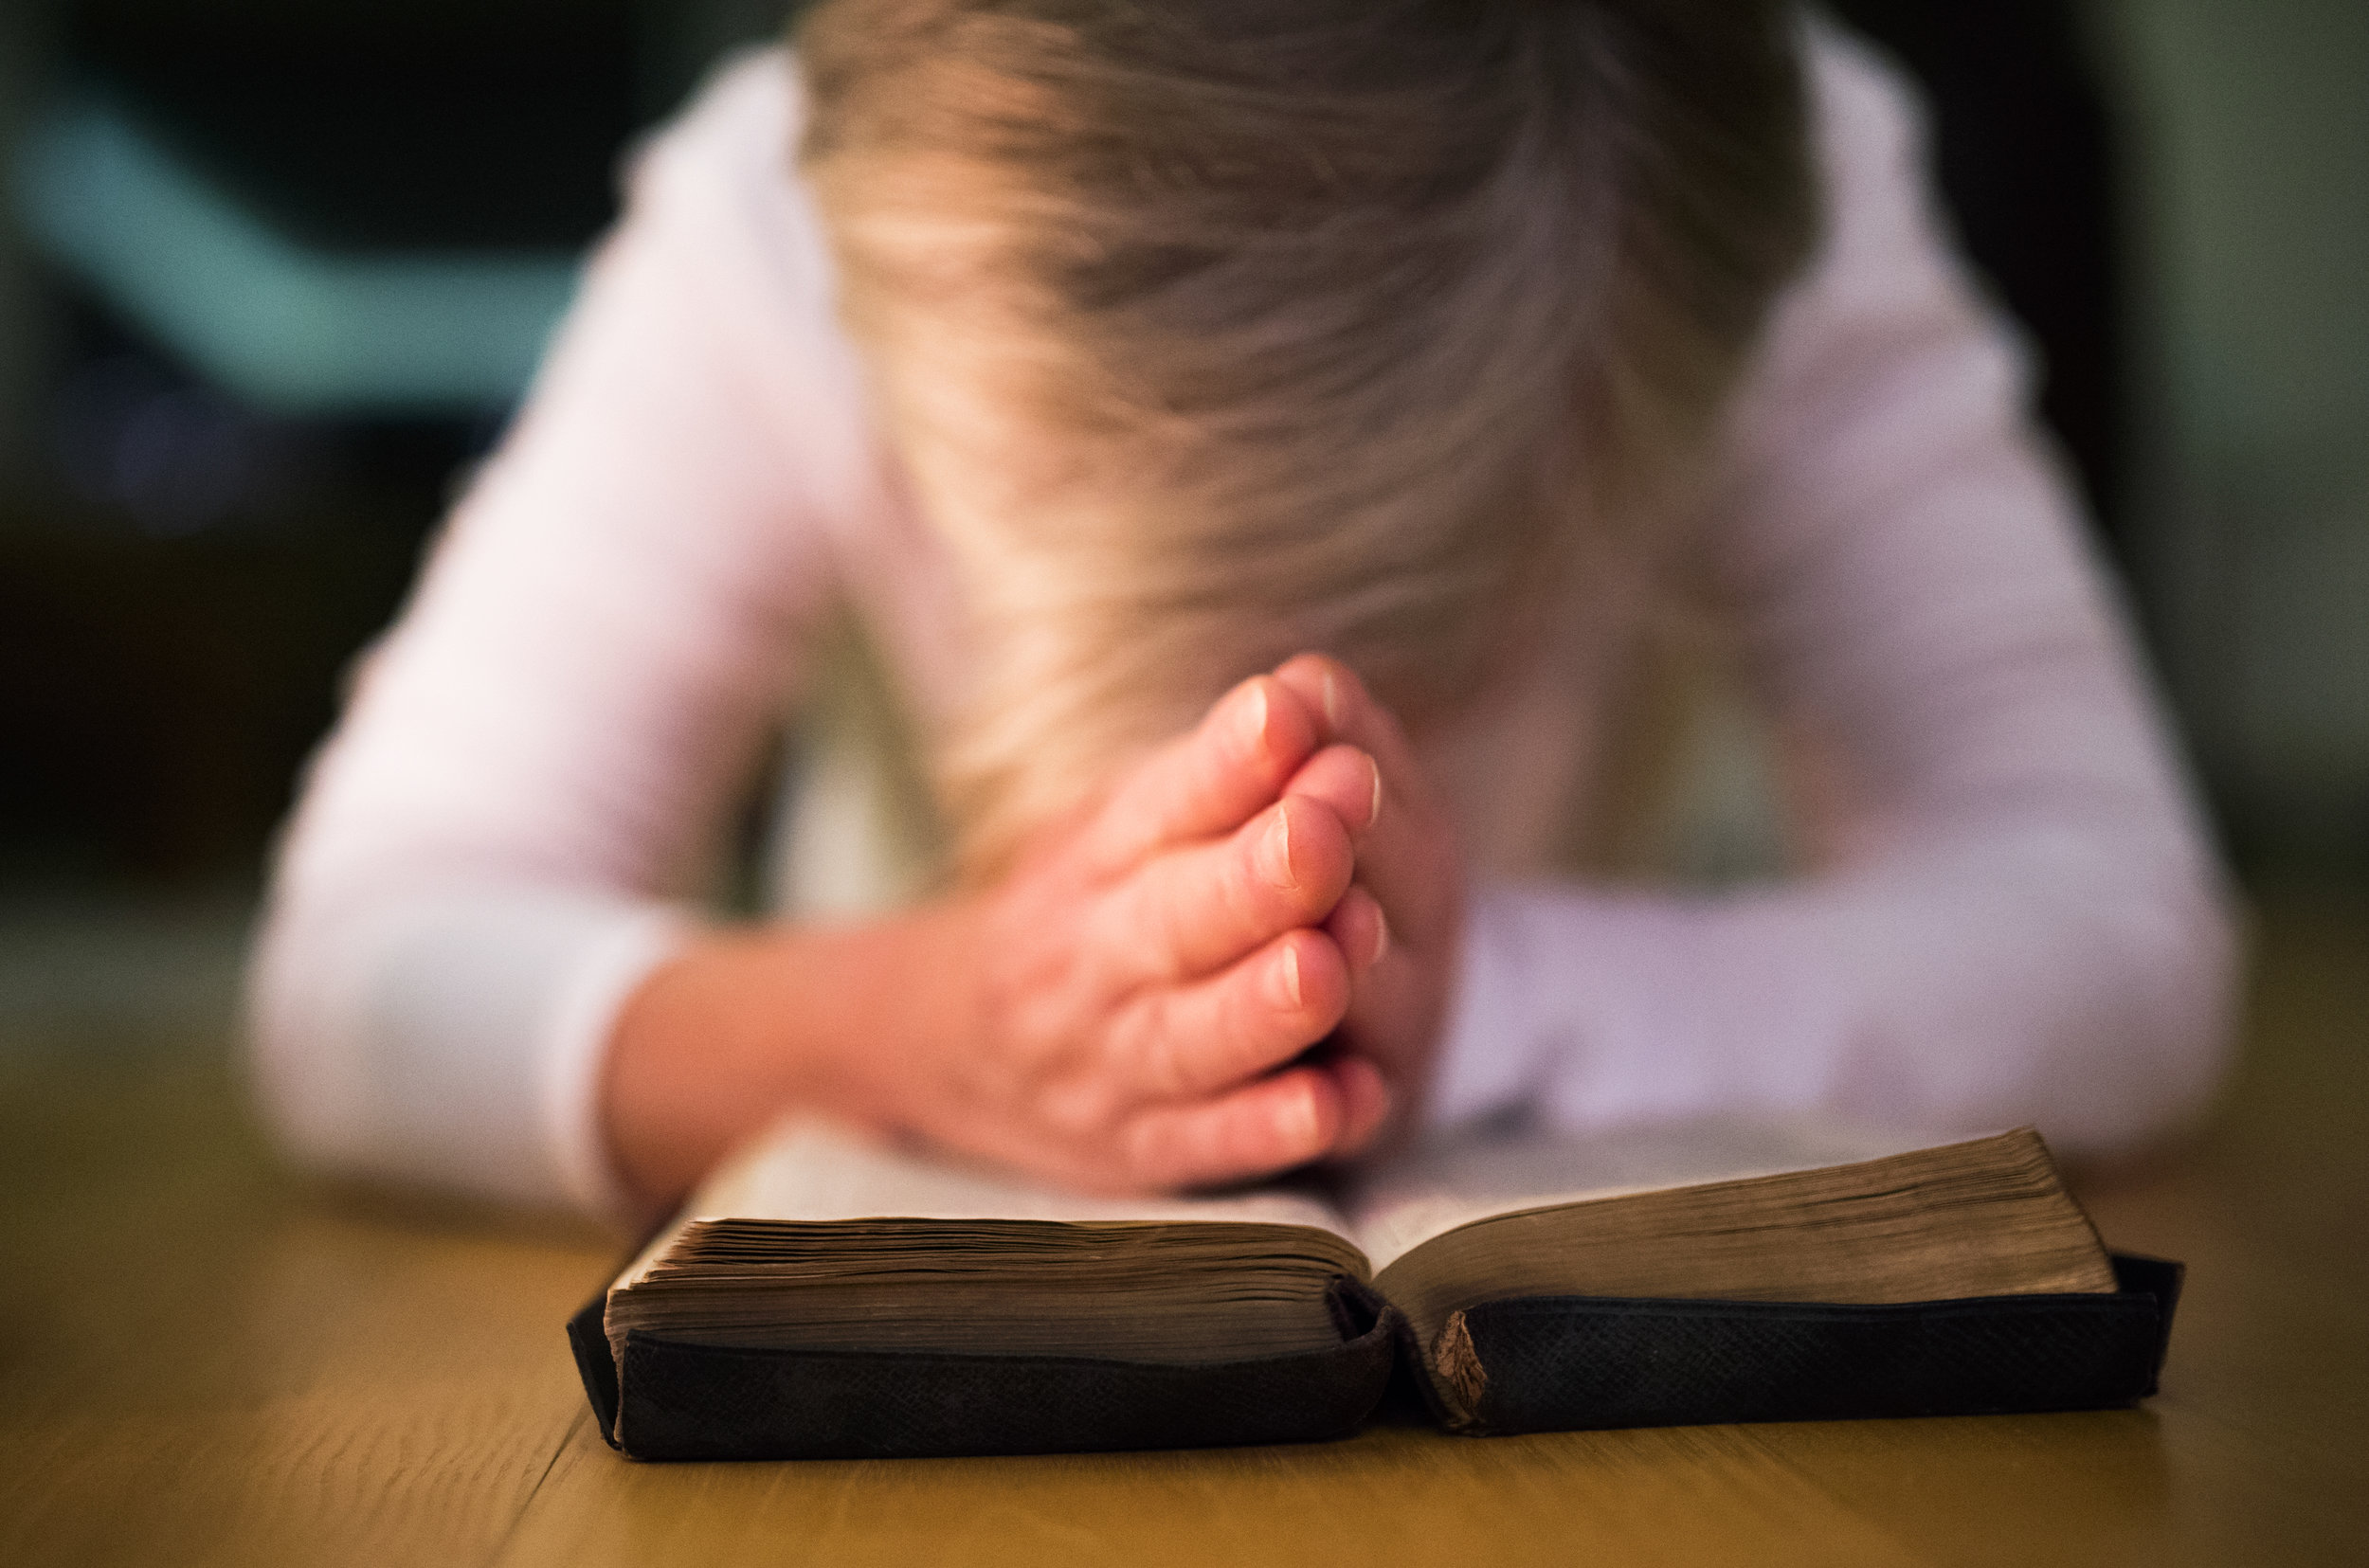 graphicstock-unrecognizable-woman-praying-with-hands-clasped-together-on-her-bible-close-up_BOghq3d8G-.jpg